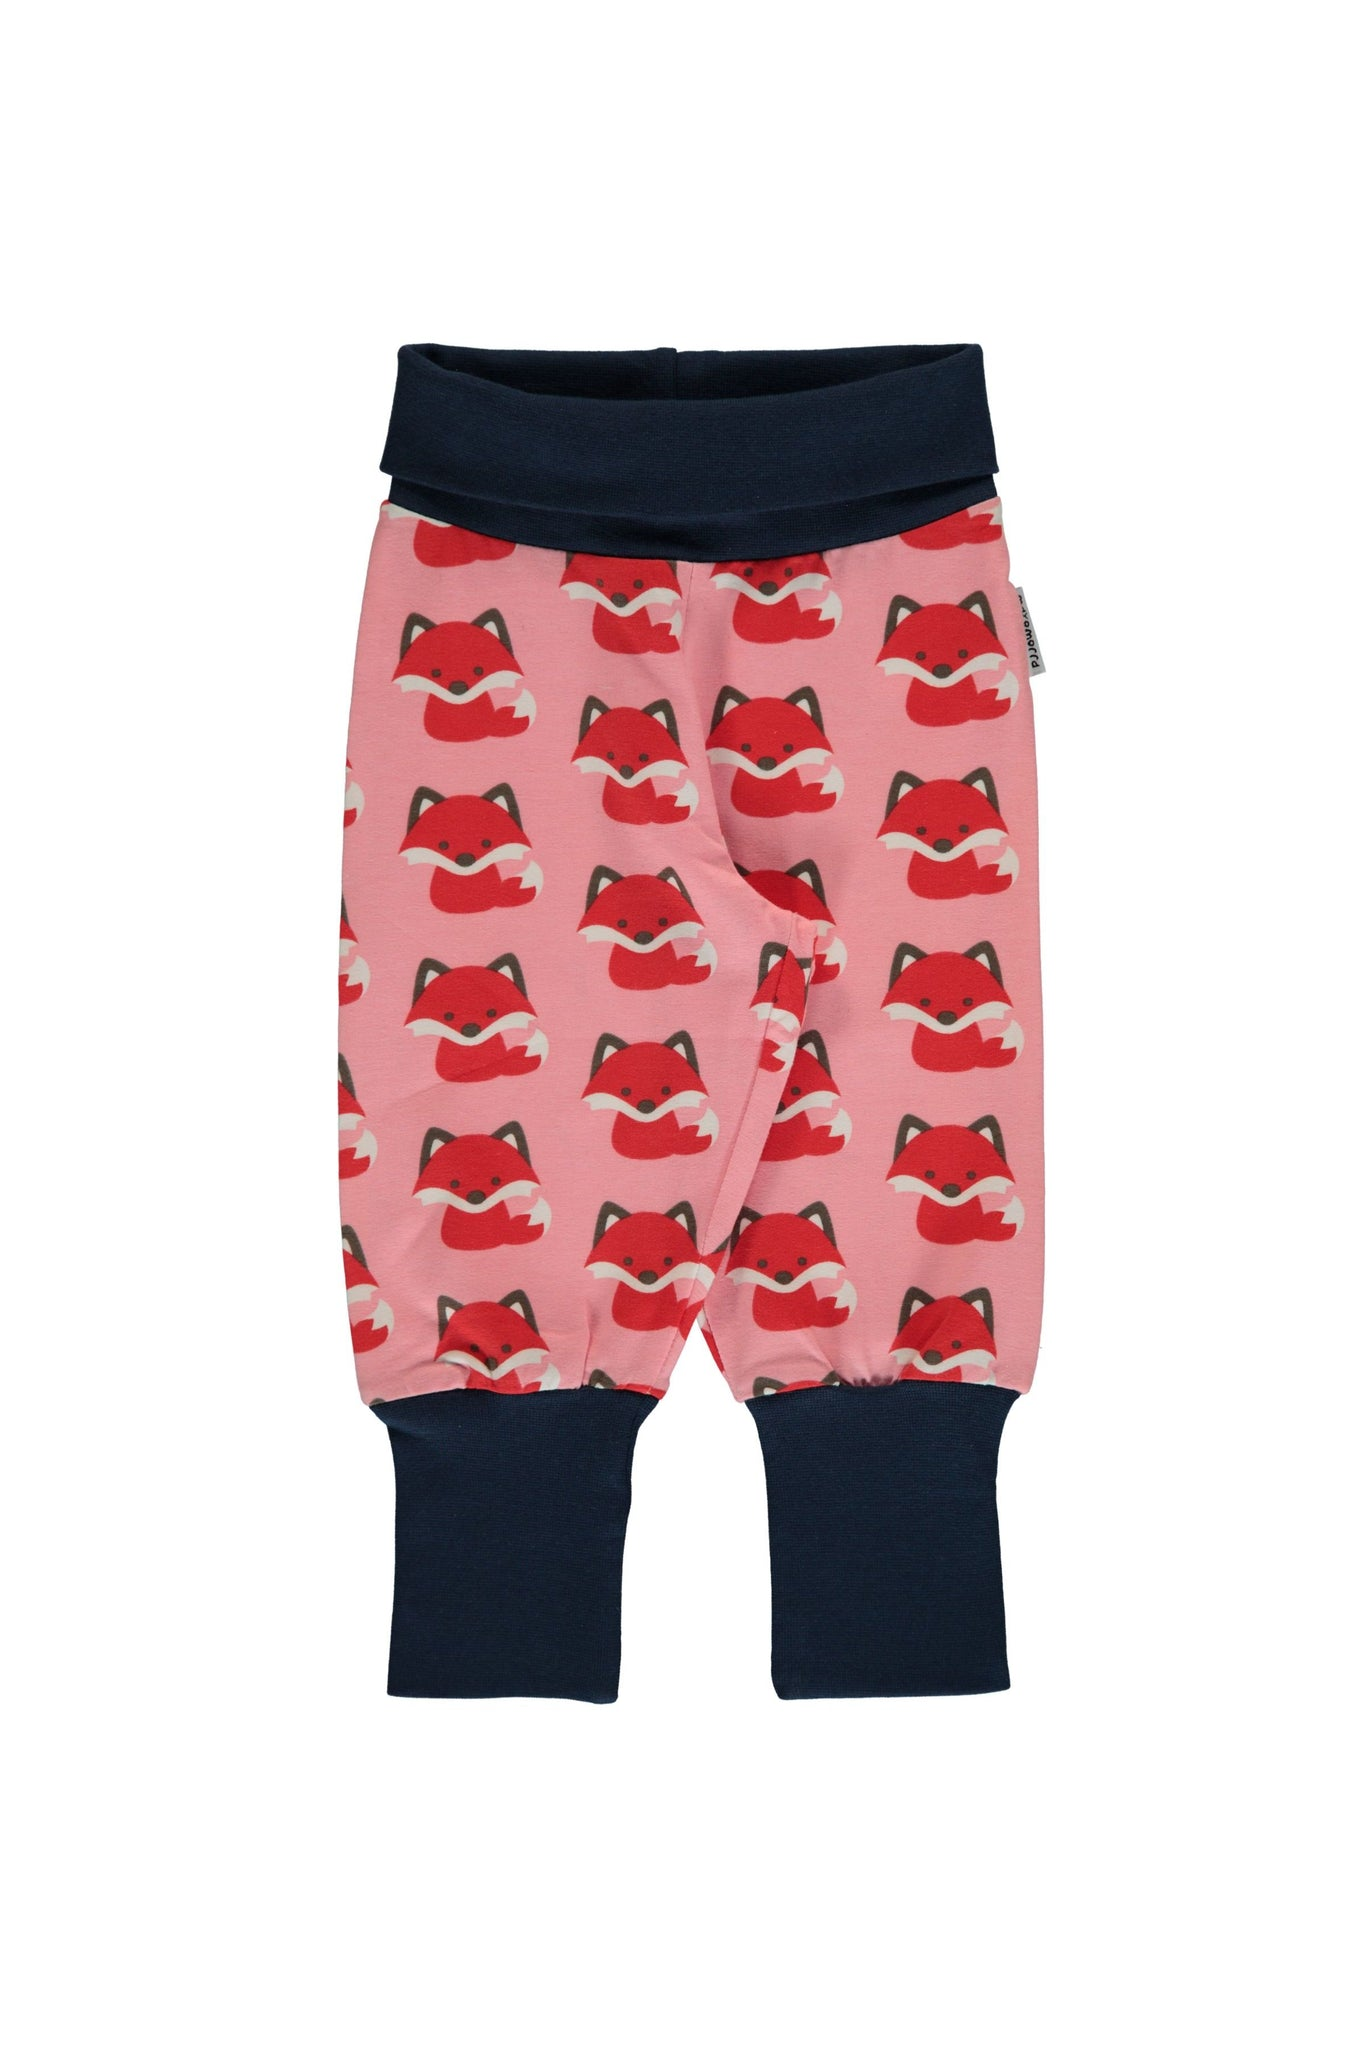 Fox - Rib - Pants - Maxomorra Fashion - Snugglefox